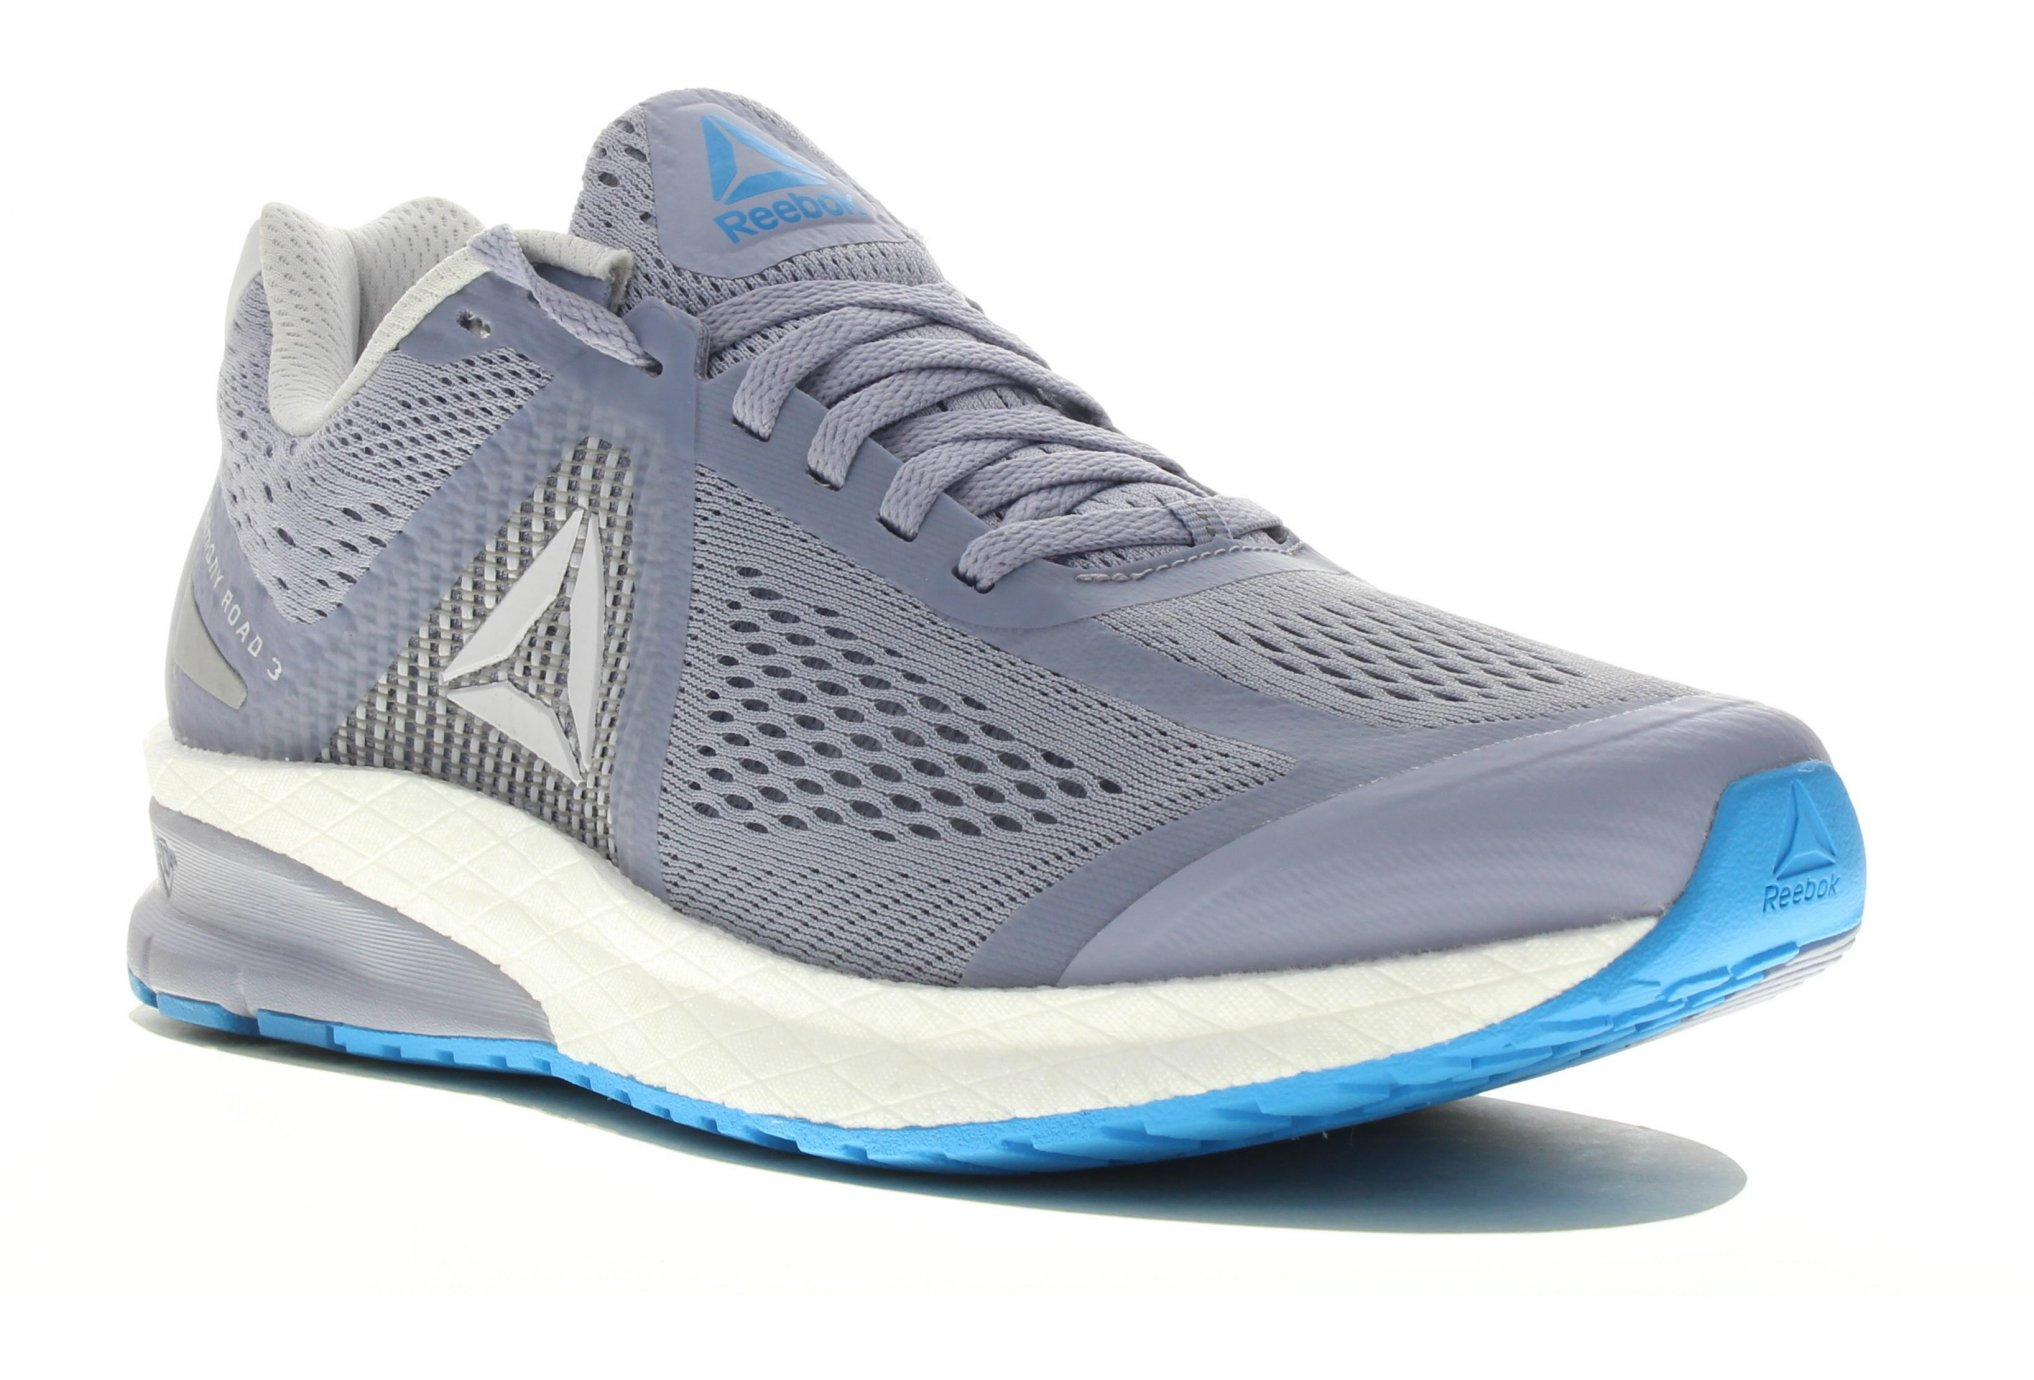 Reebok Harmony Road 3 Chaussures running femme